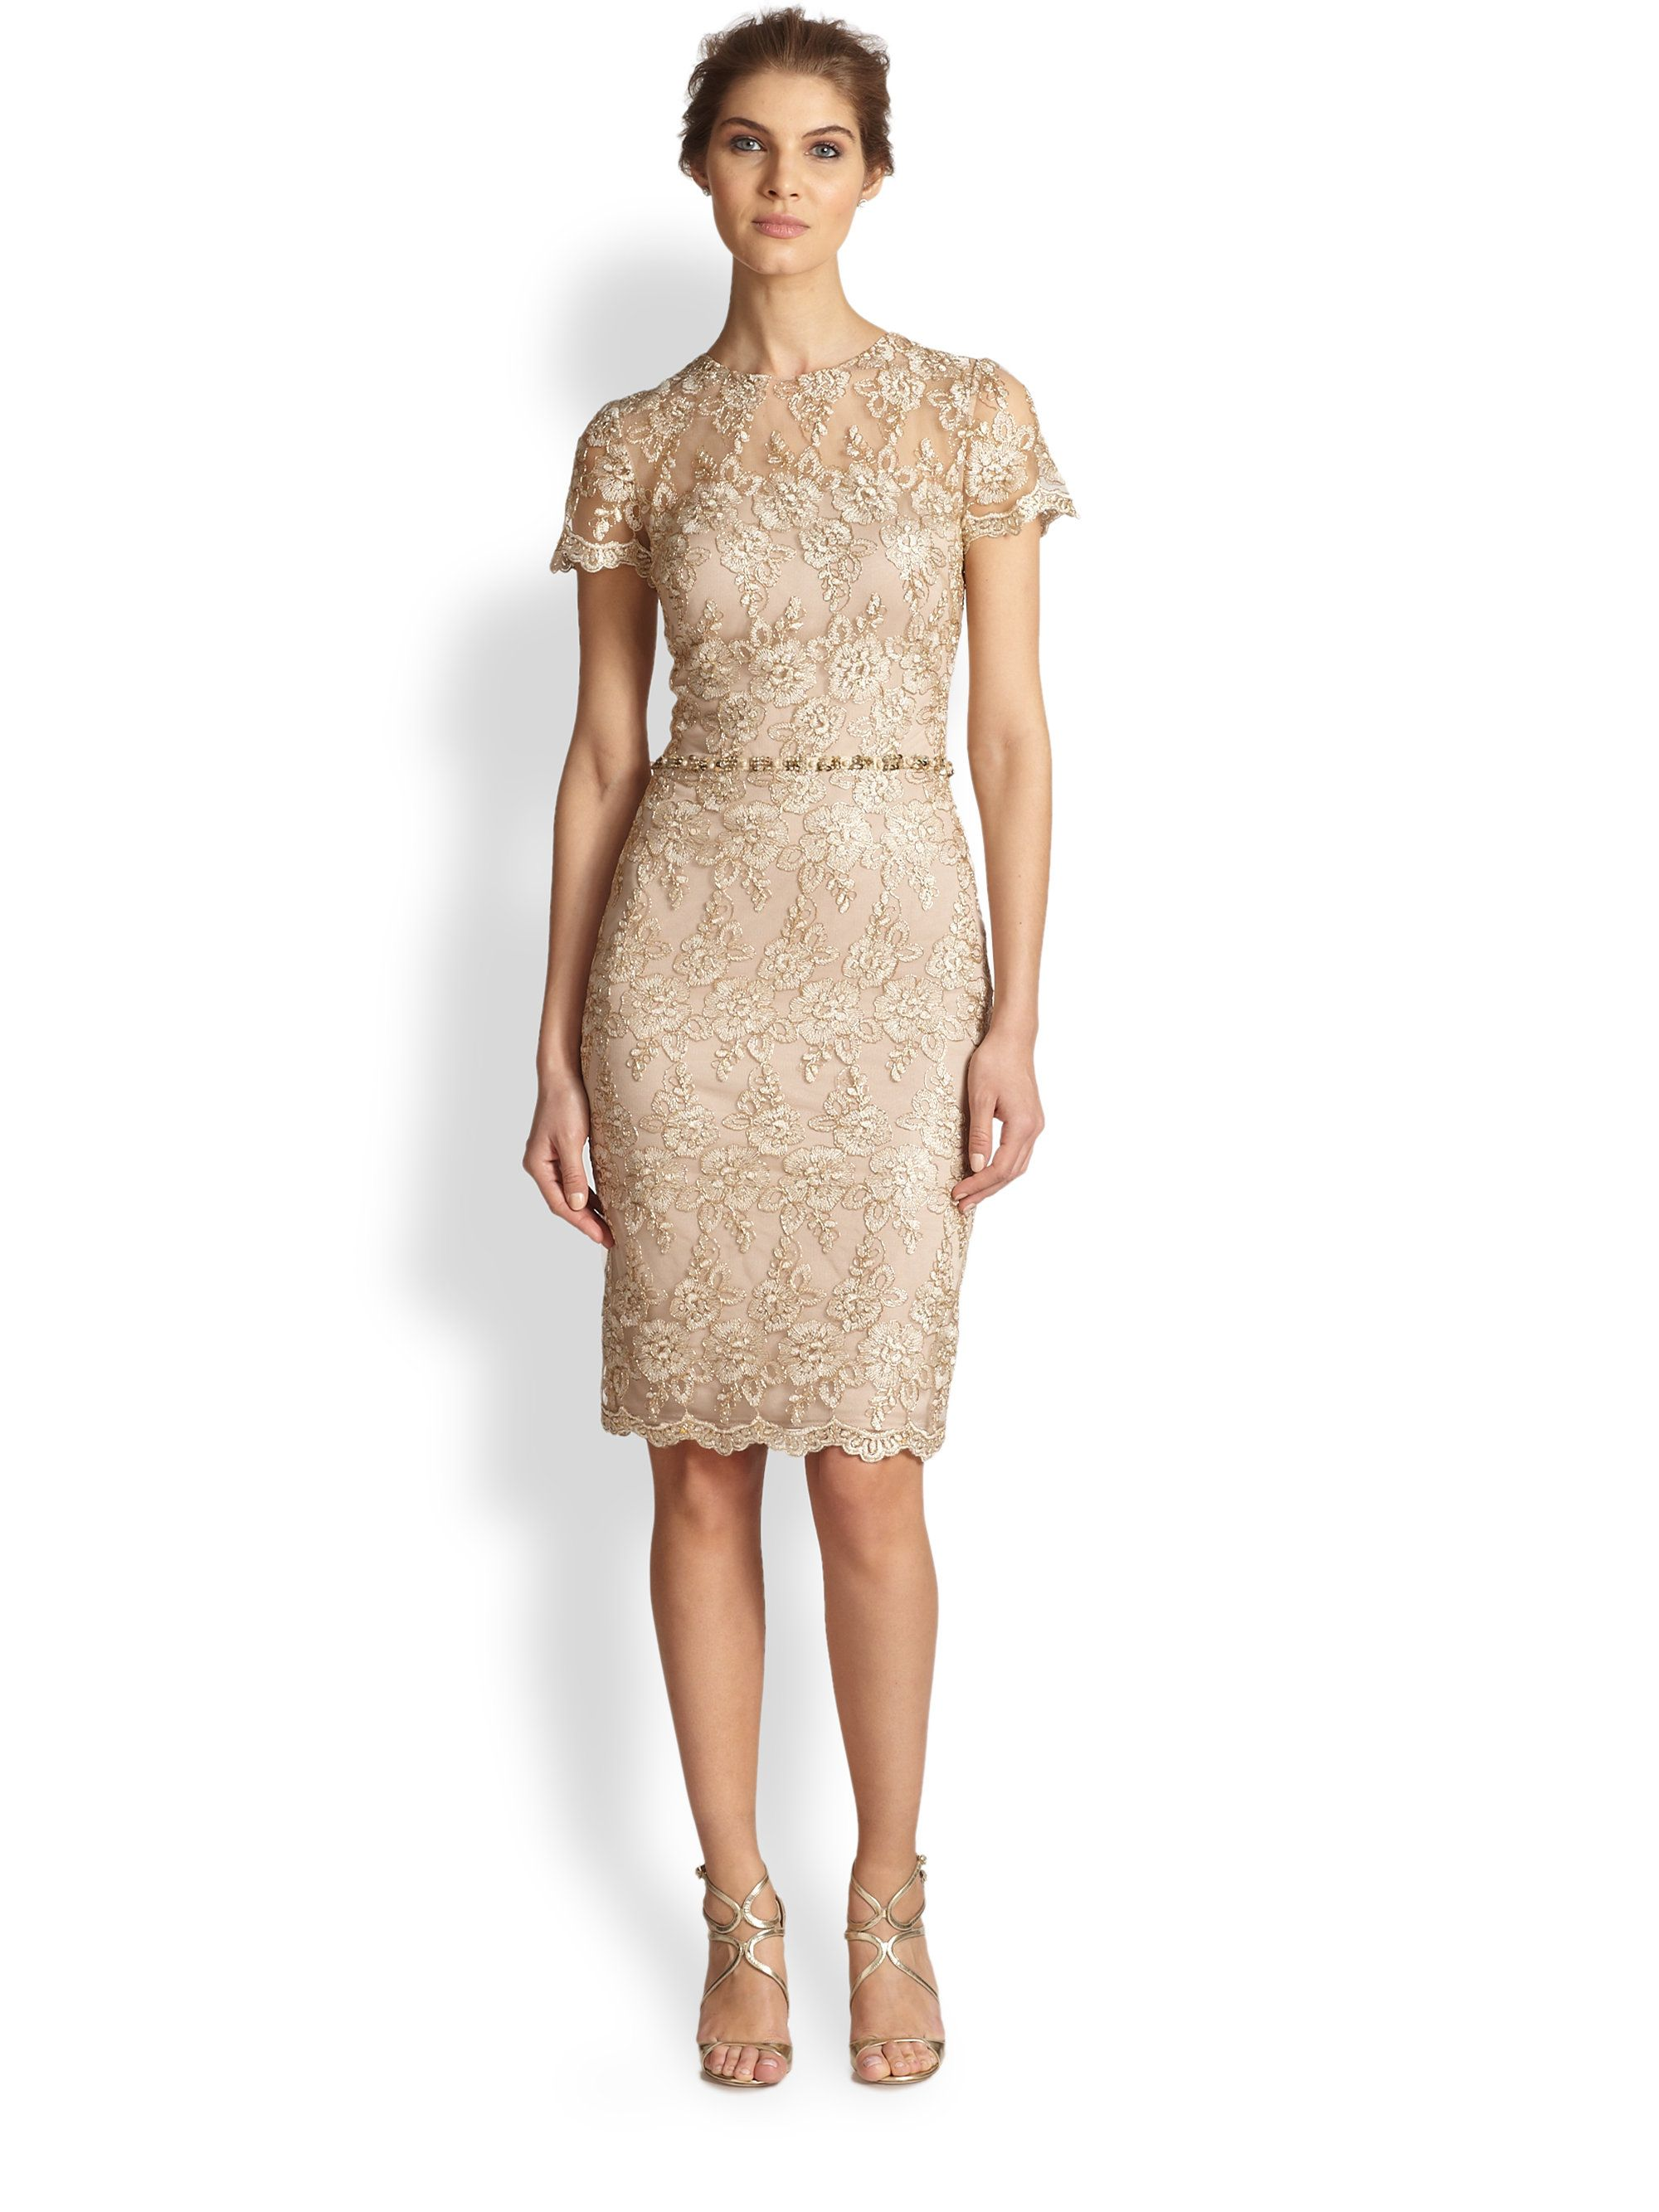 8d03c80fd3daa David Meister Shortsleeve Lace Dress in Beige (TAUPE)